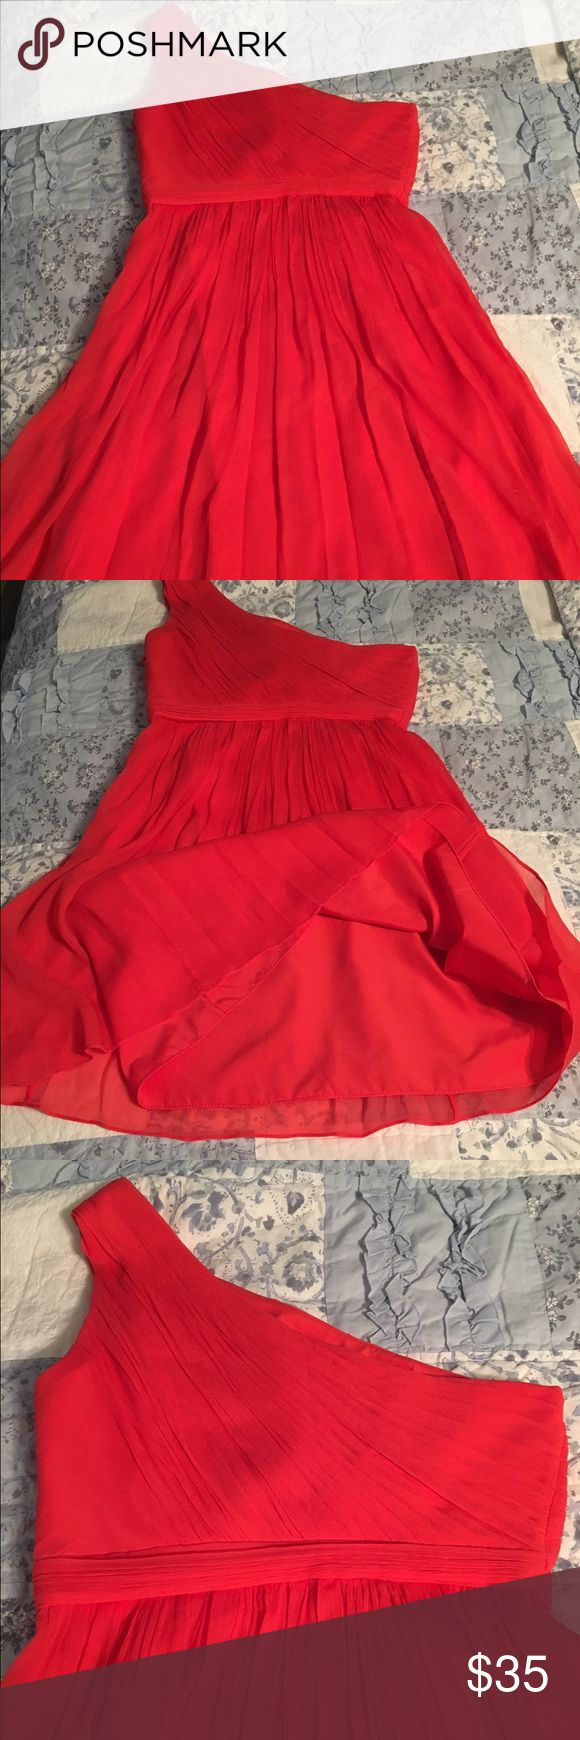 J crew 100% silk one strap dress size PS J crew 100% silk one strap dress size PS. I bought from Poshmark but it's too small for me. Excellent used condition. Size petite small. This beauty is red with a hint of orange. Would make a great bridesmaid or holiday party dress. 100% silk. Dresses Wedding